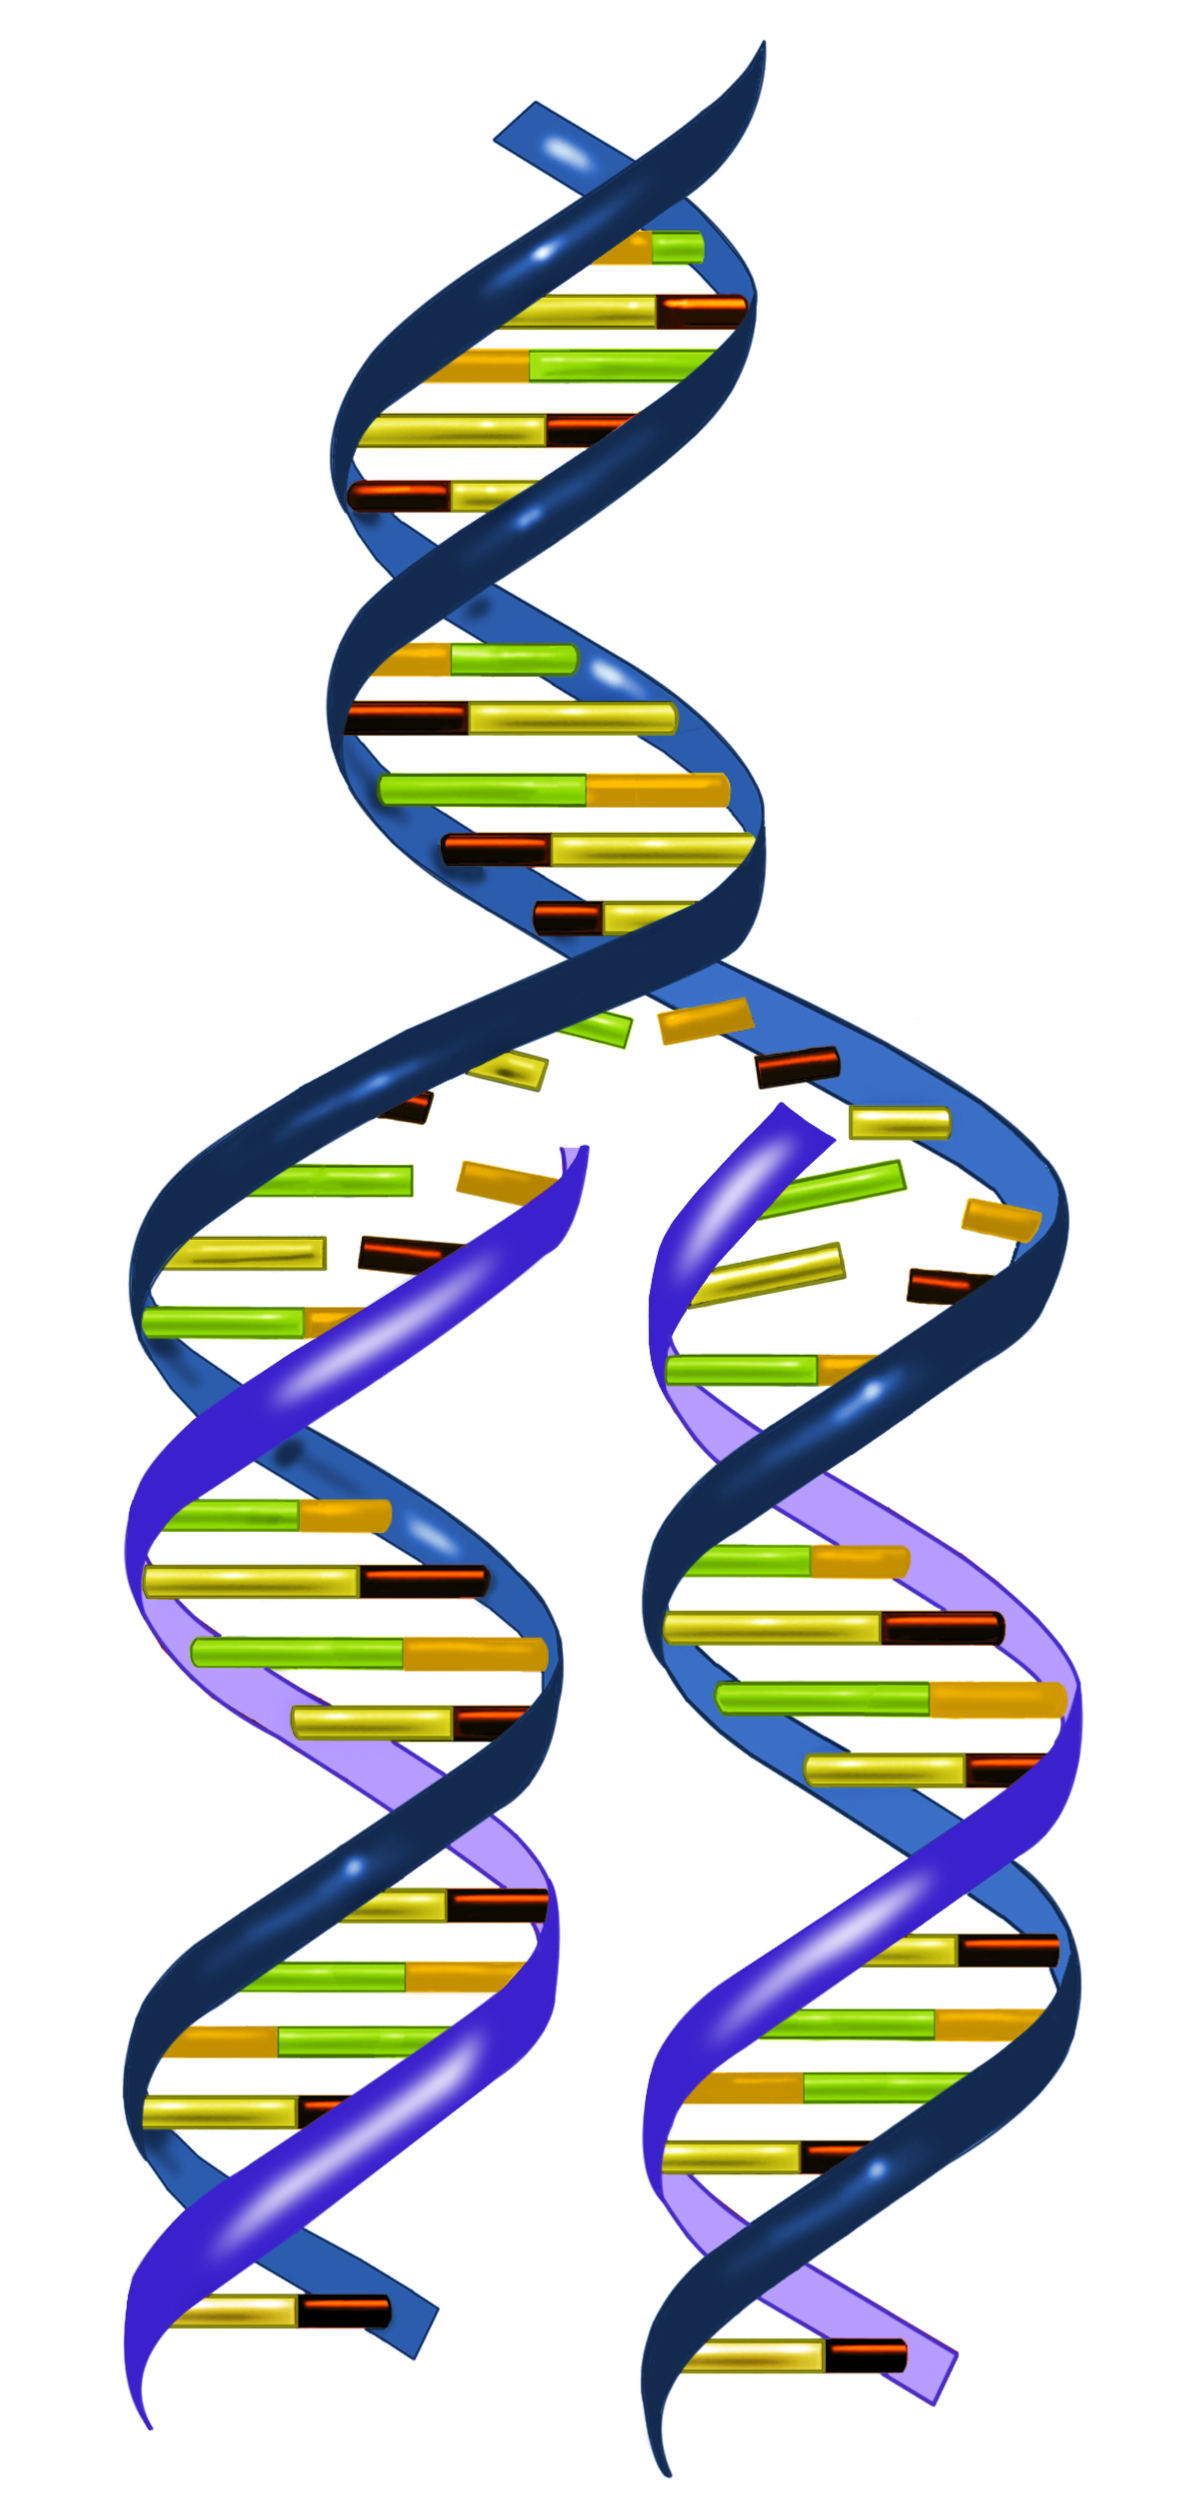 2 dna strands clipart jpg black and white download Biotechnology: Basic Rules of DNA Replication jpg black and white download